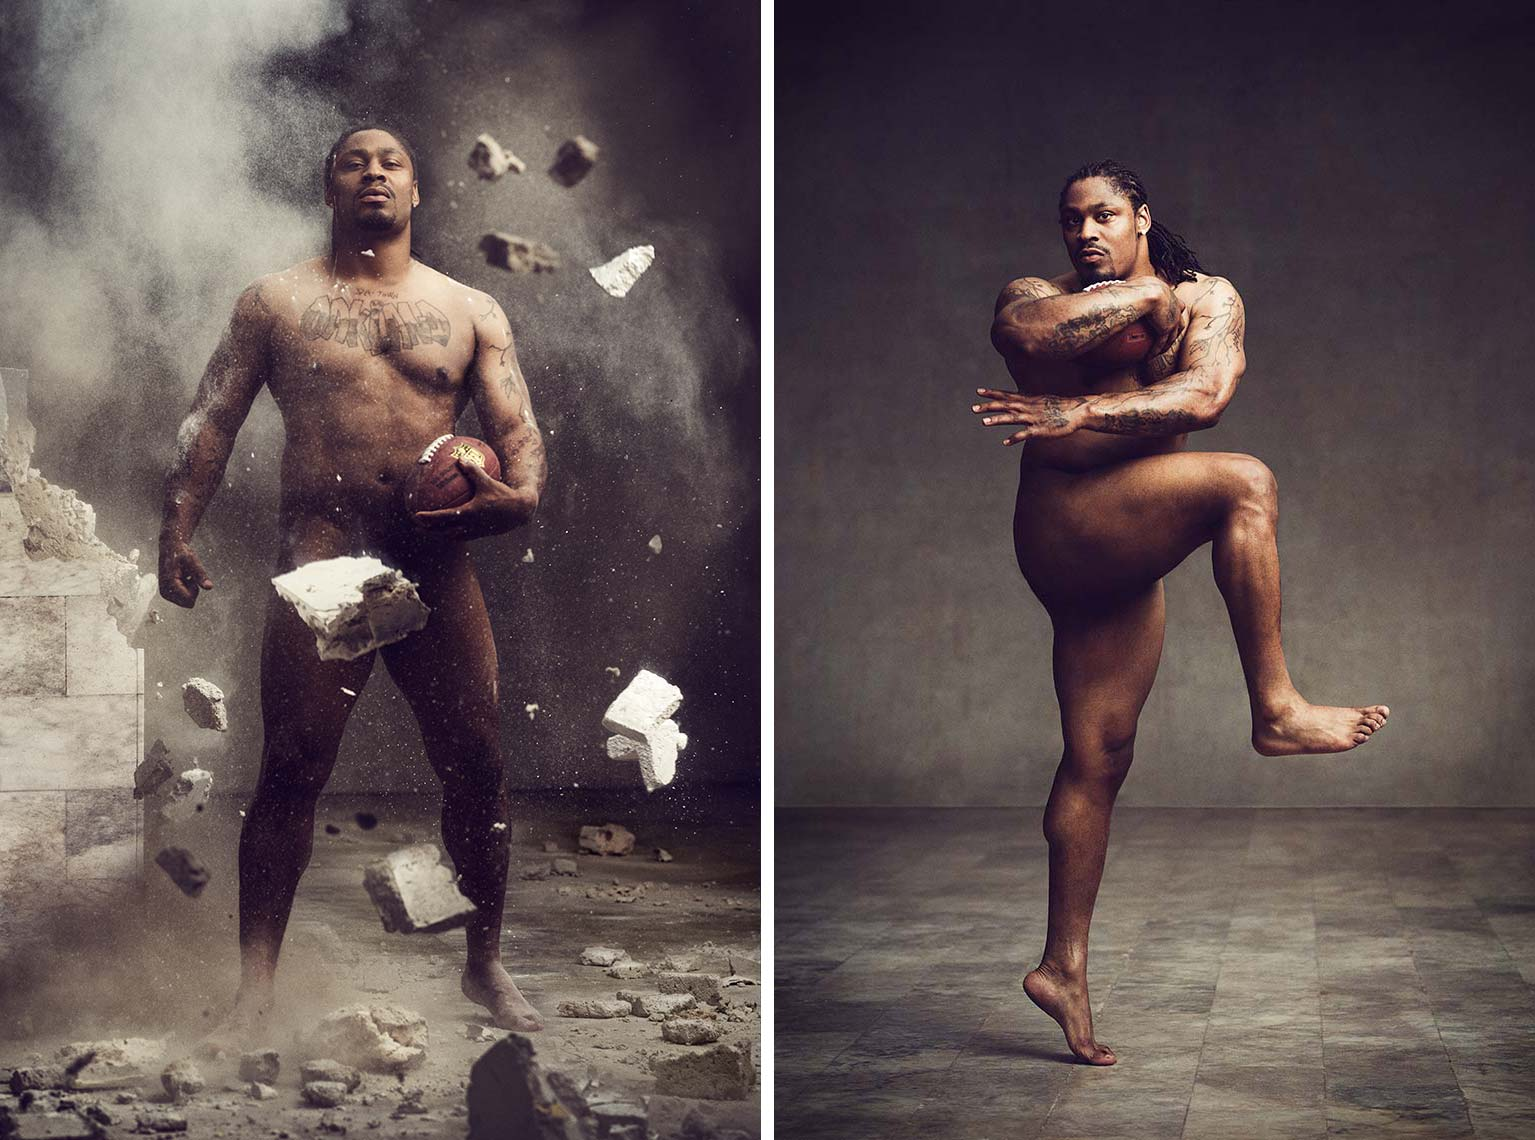 ESPN: THE BODY ISSUE - MARSHAWN LYNCH